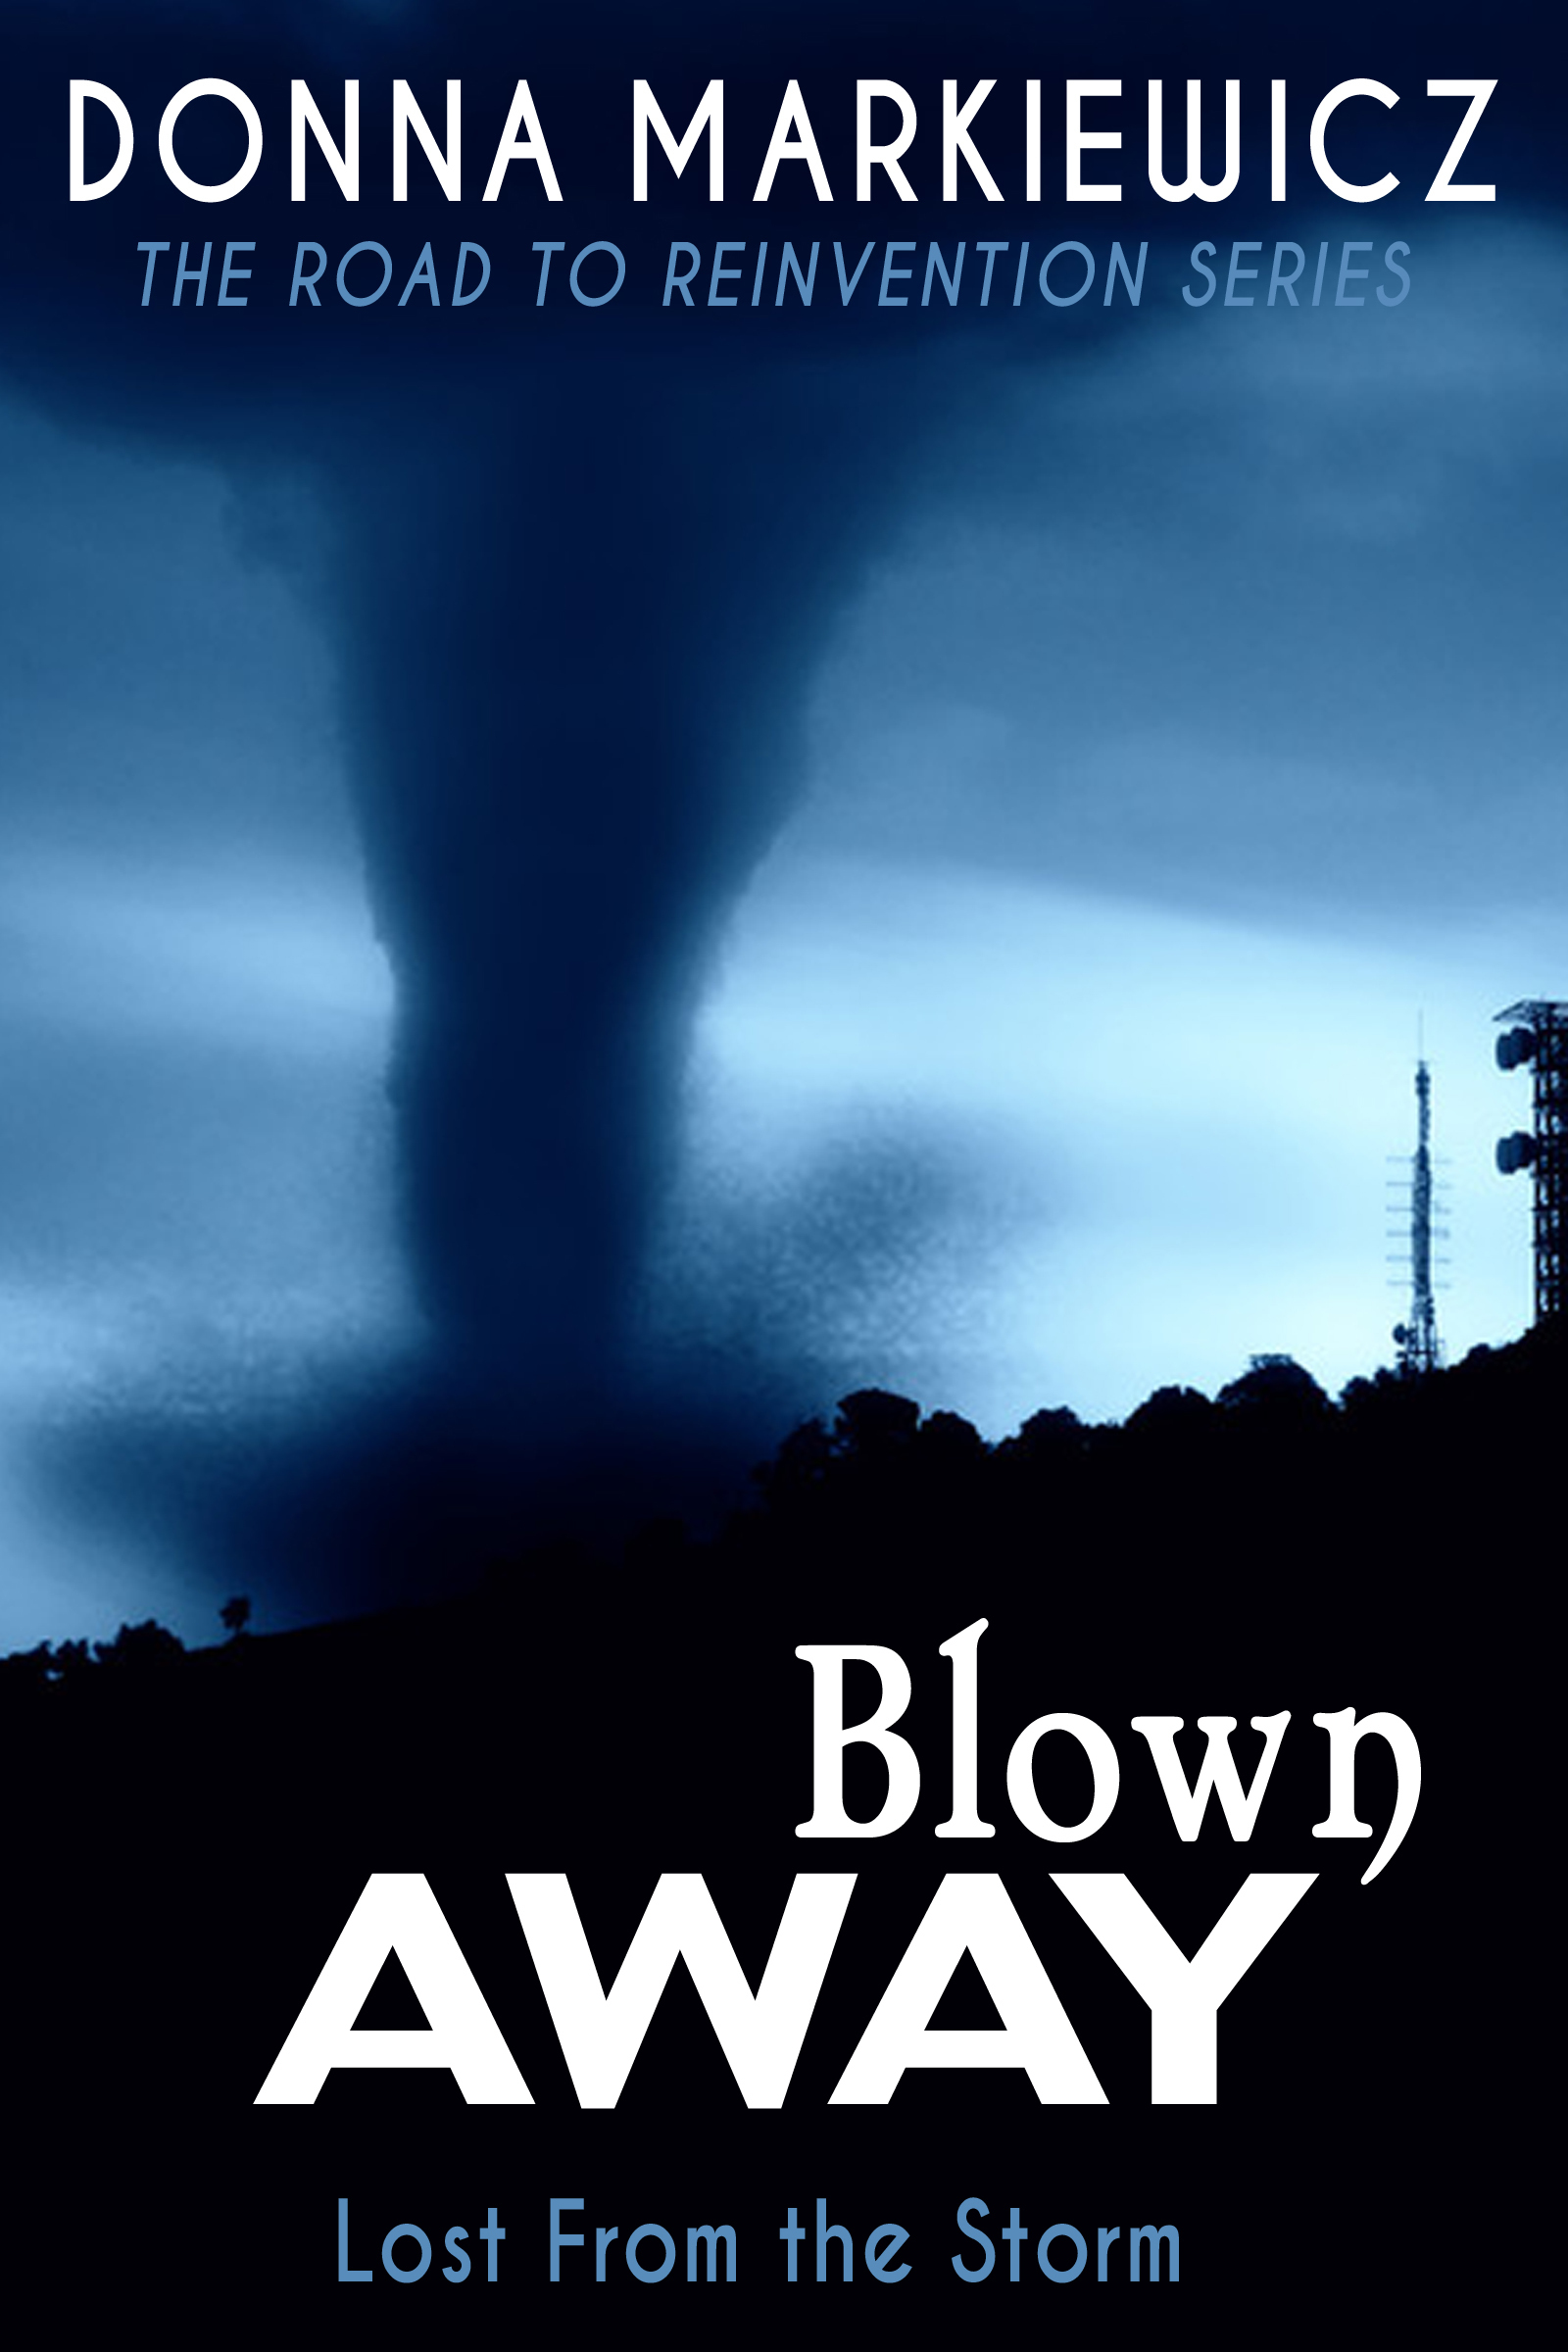 Blown Away: Lost From the Storm (The Road to Reinvention Book 2)